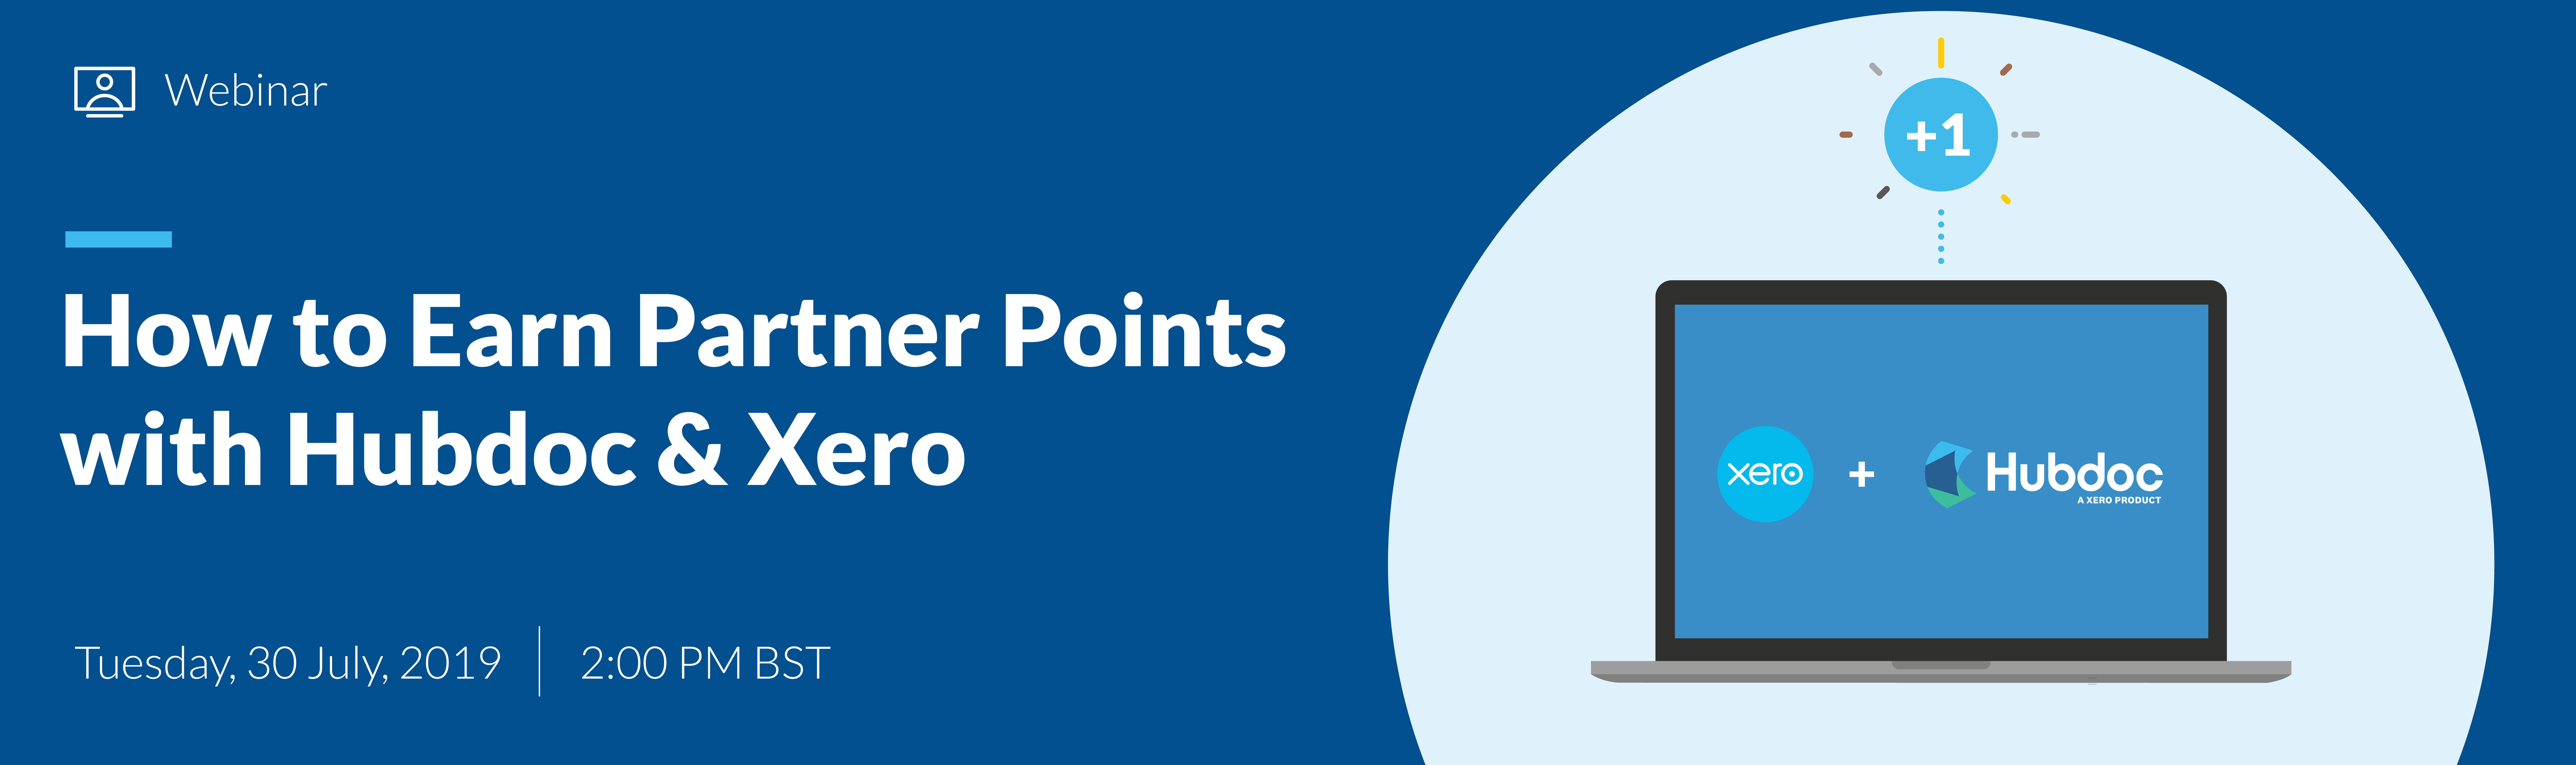 How to Earn Partner Points with Hubdoc & Xero